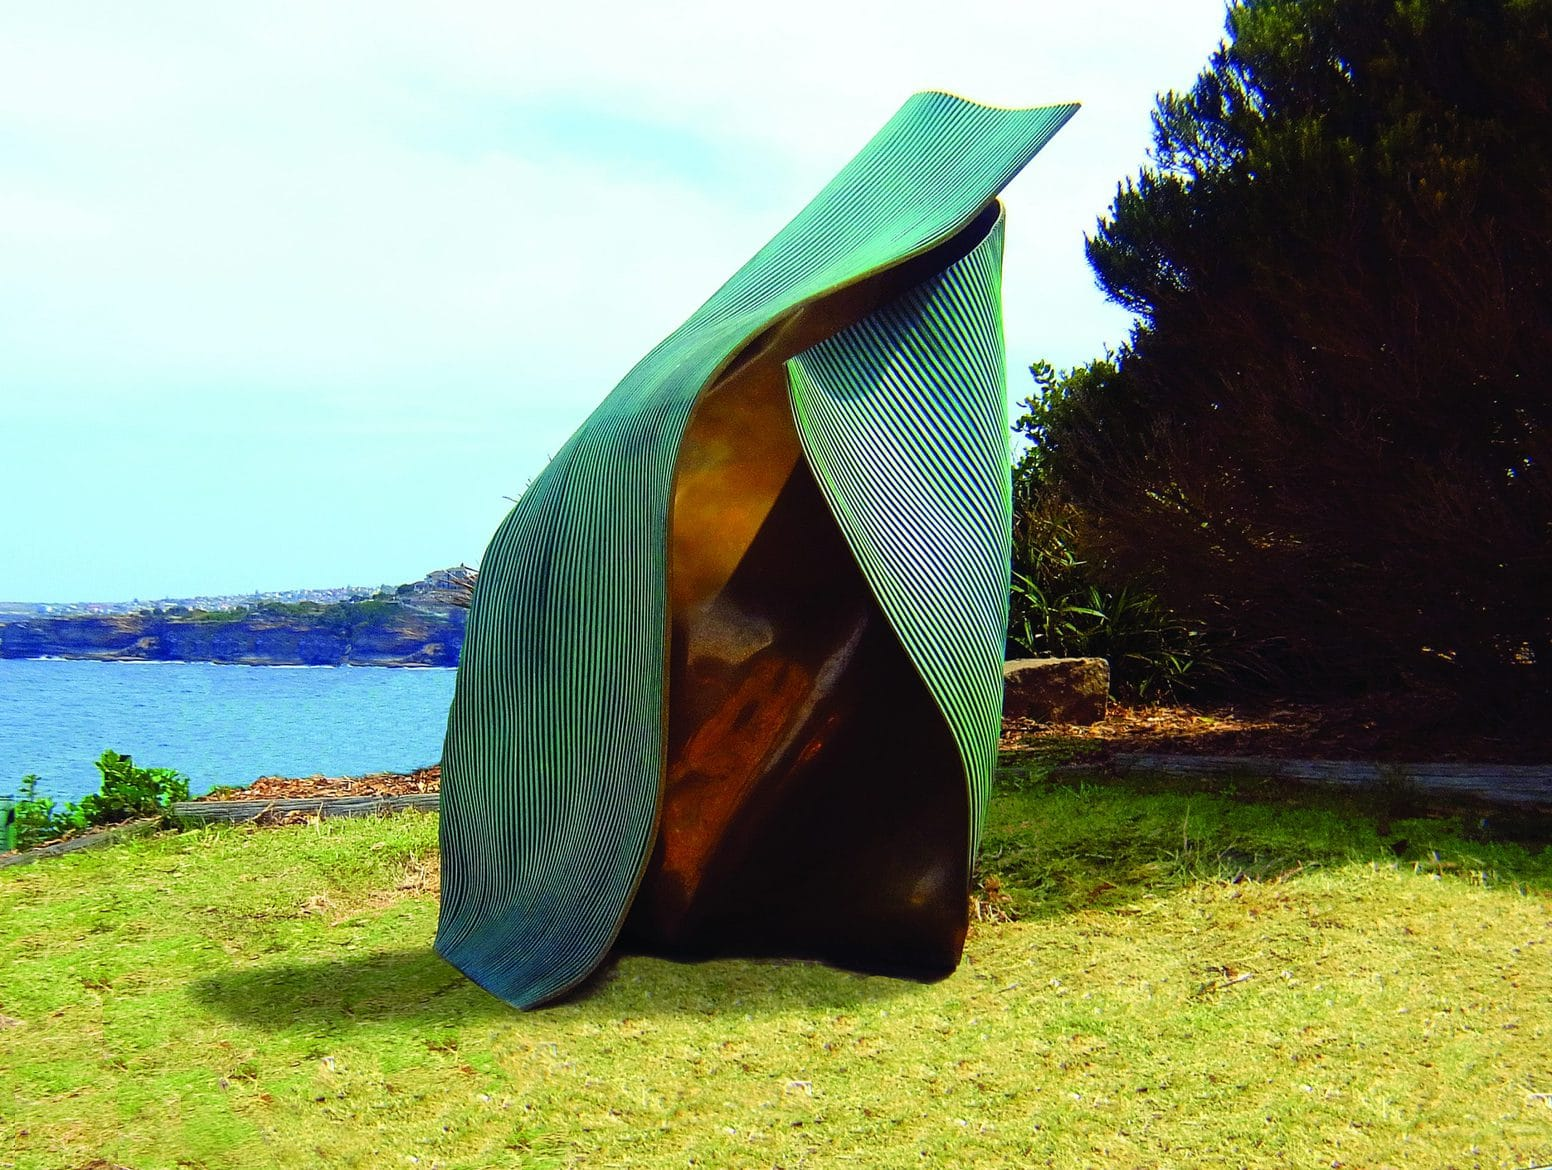 'Folded 3', 2012, bronze, 144 x 93 x 114 cm, edition 1 of 12